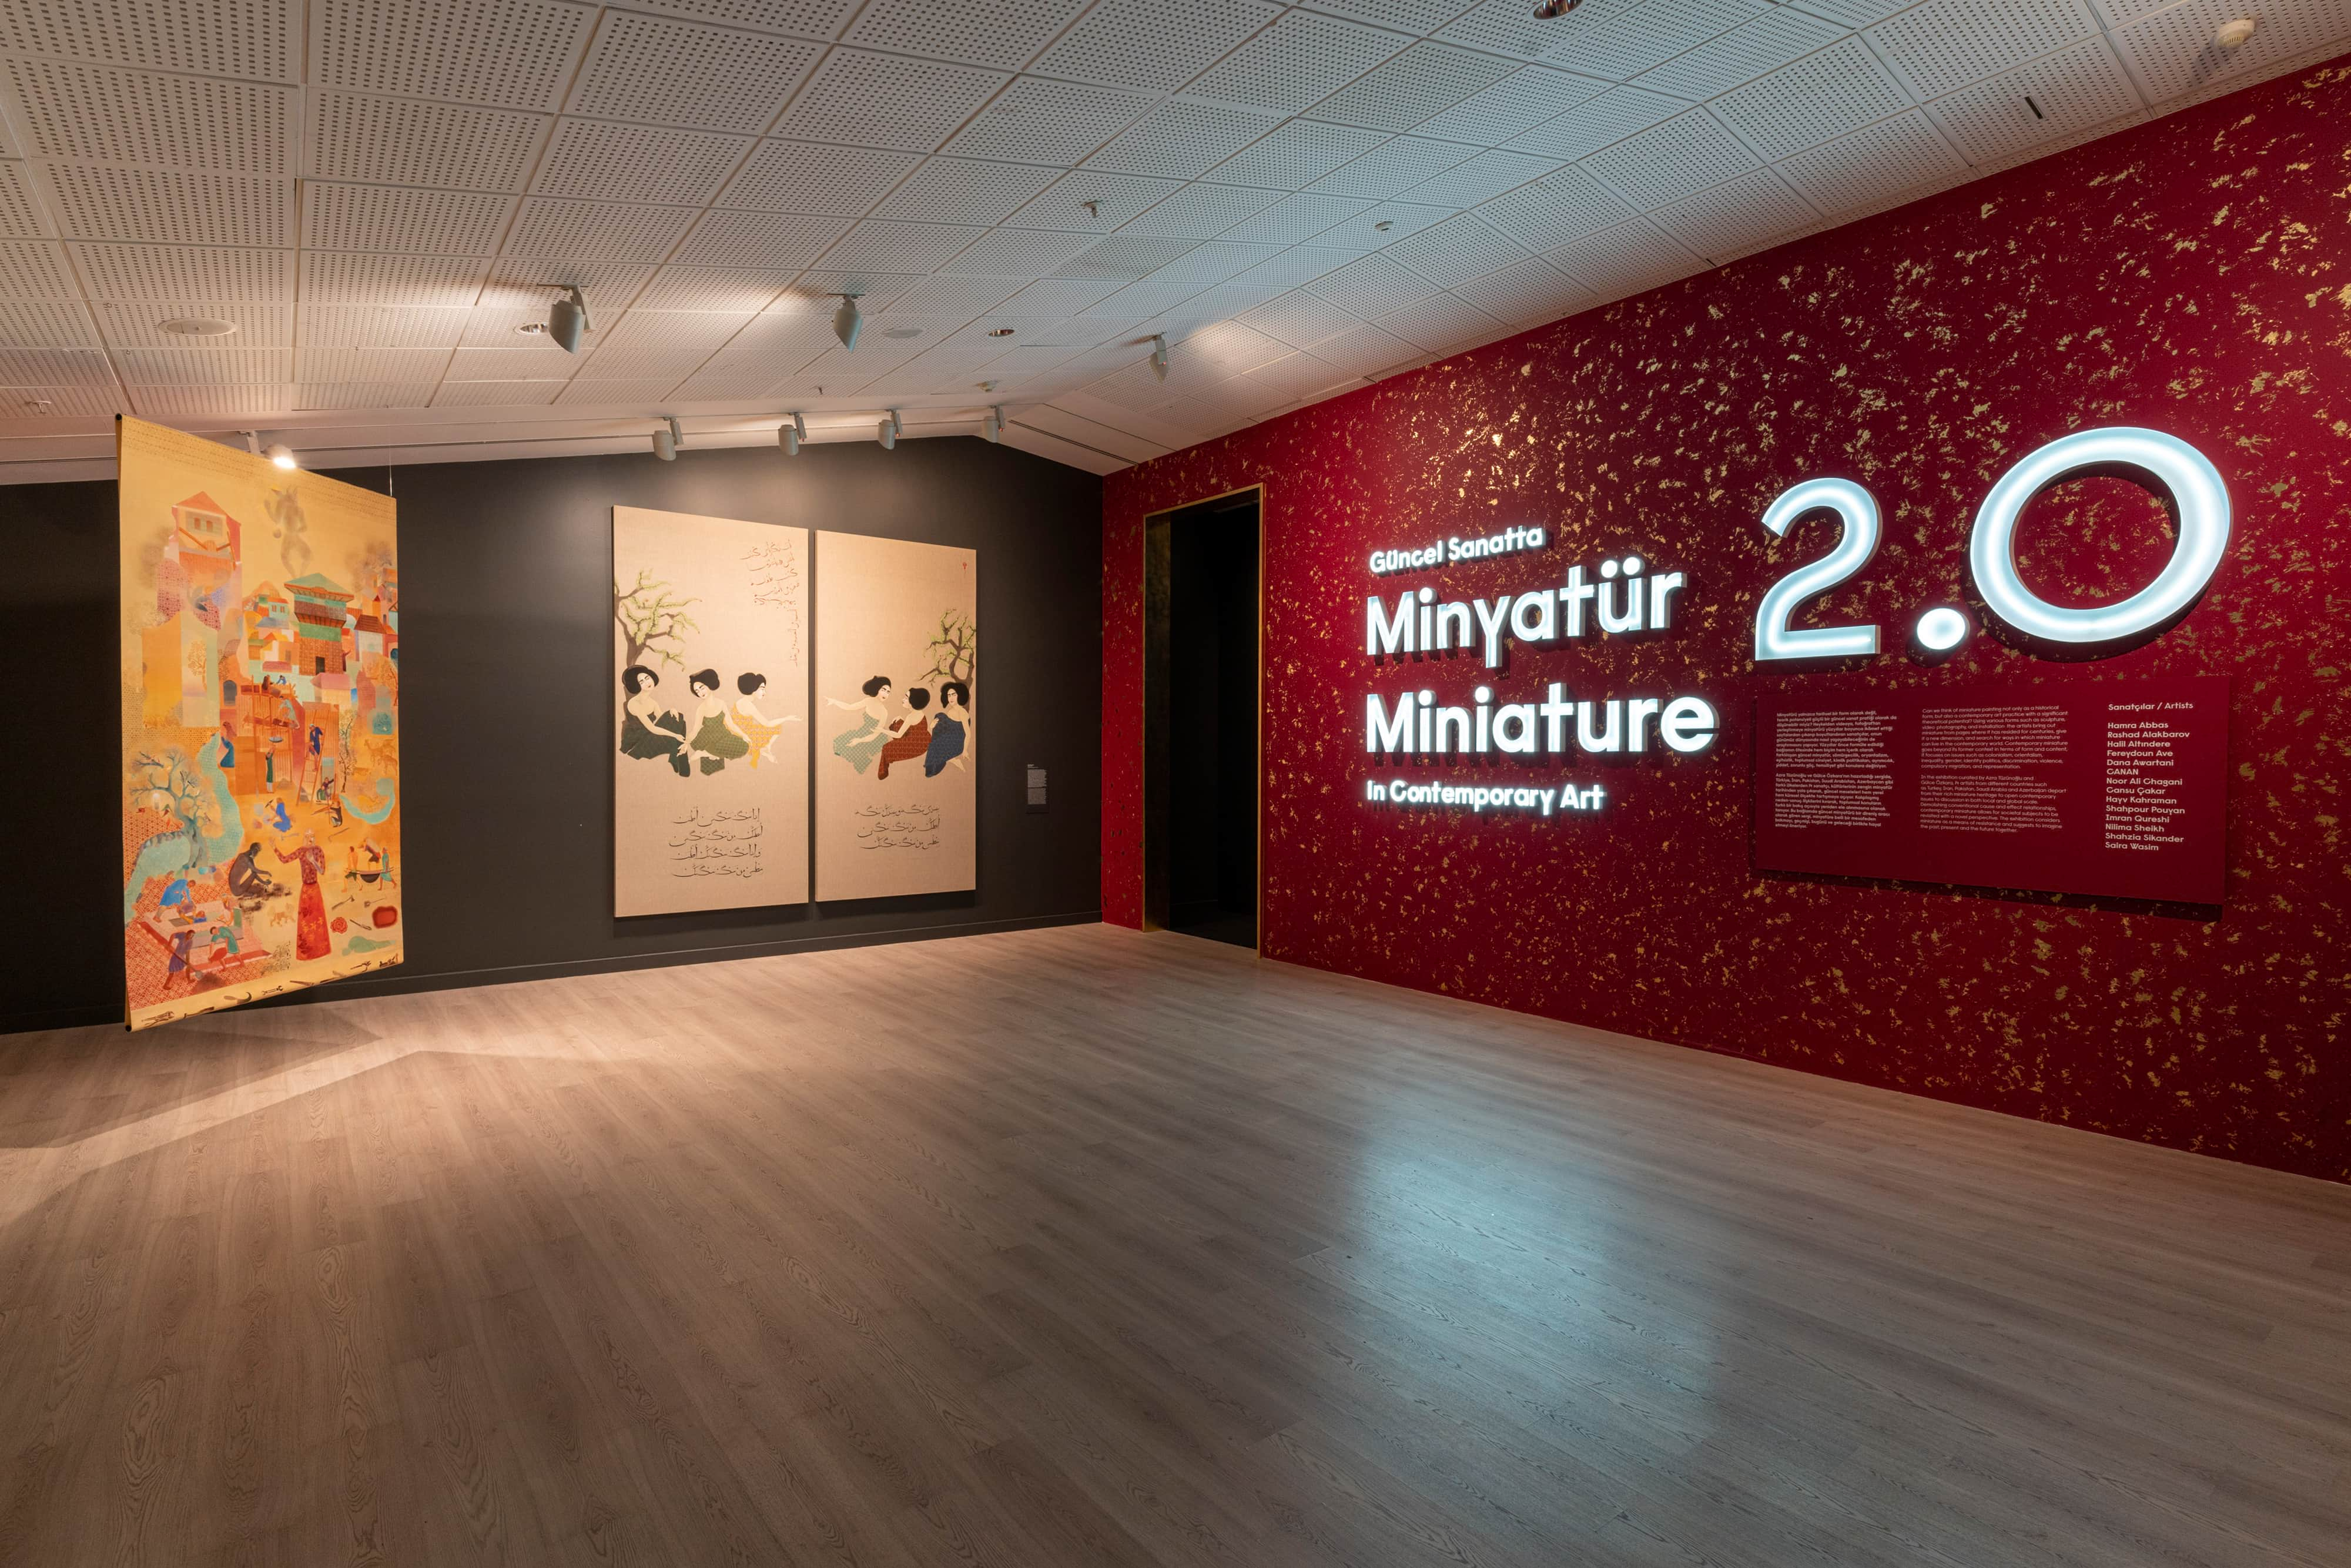 Miniature 2.0 gallery 14